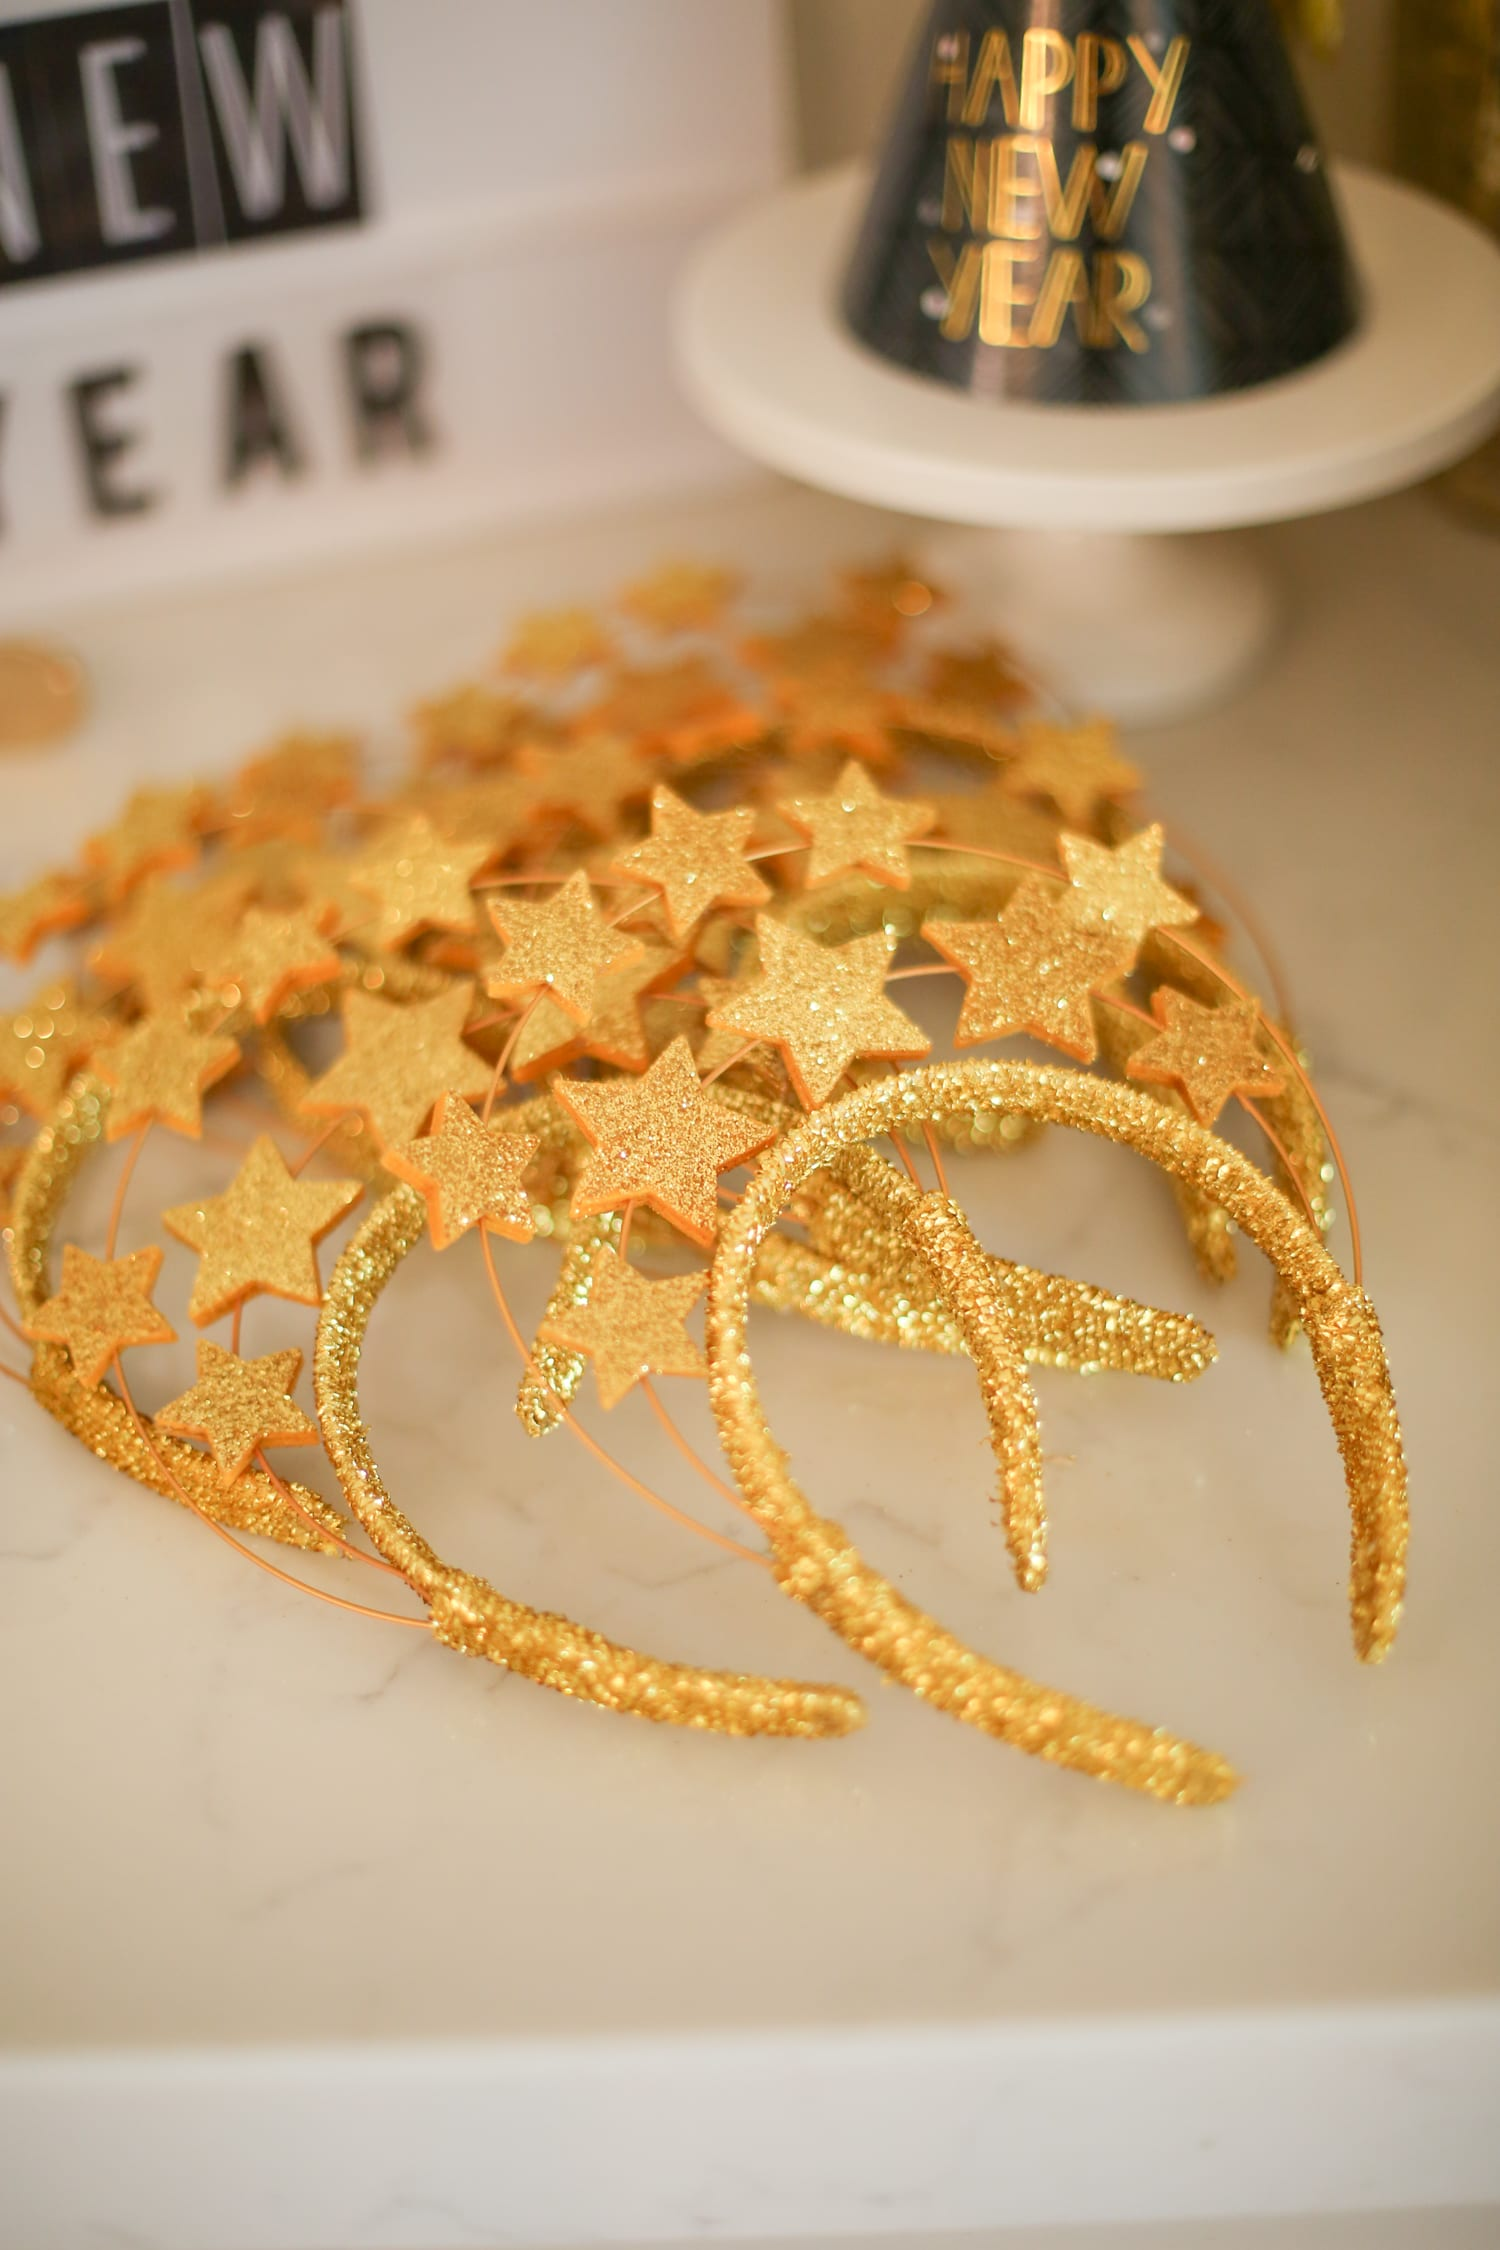 New Year's Eve tips, tricks, and decorations for a family party